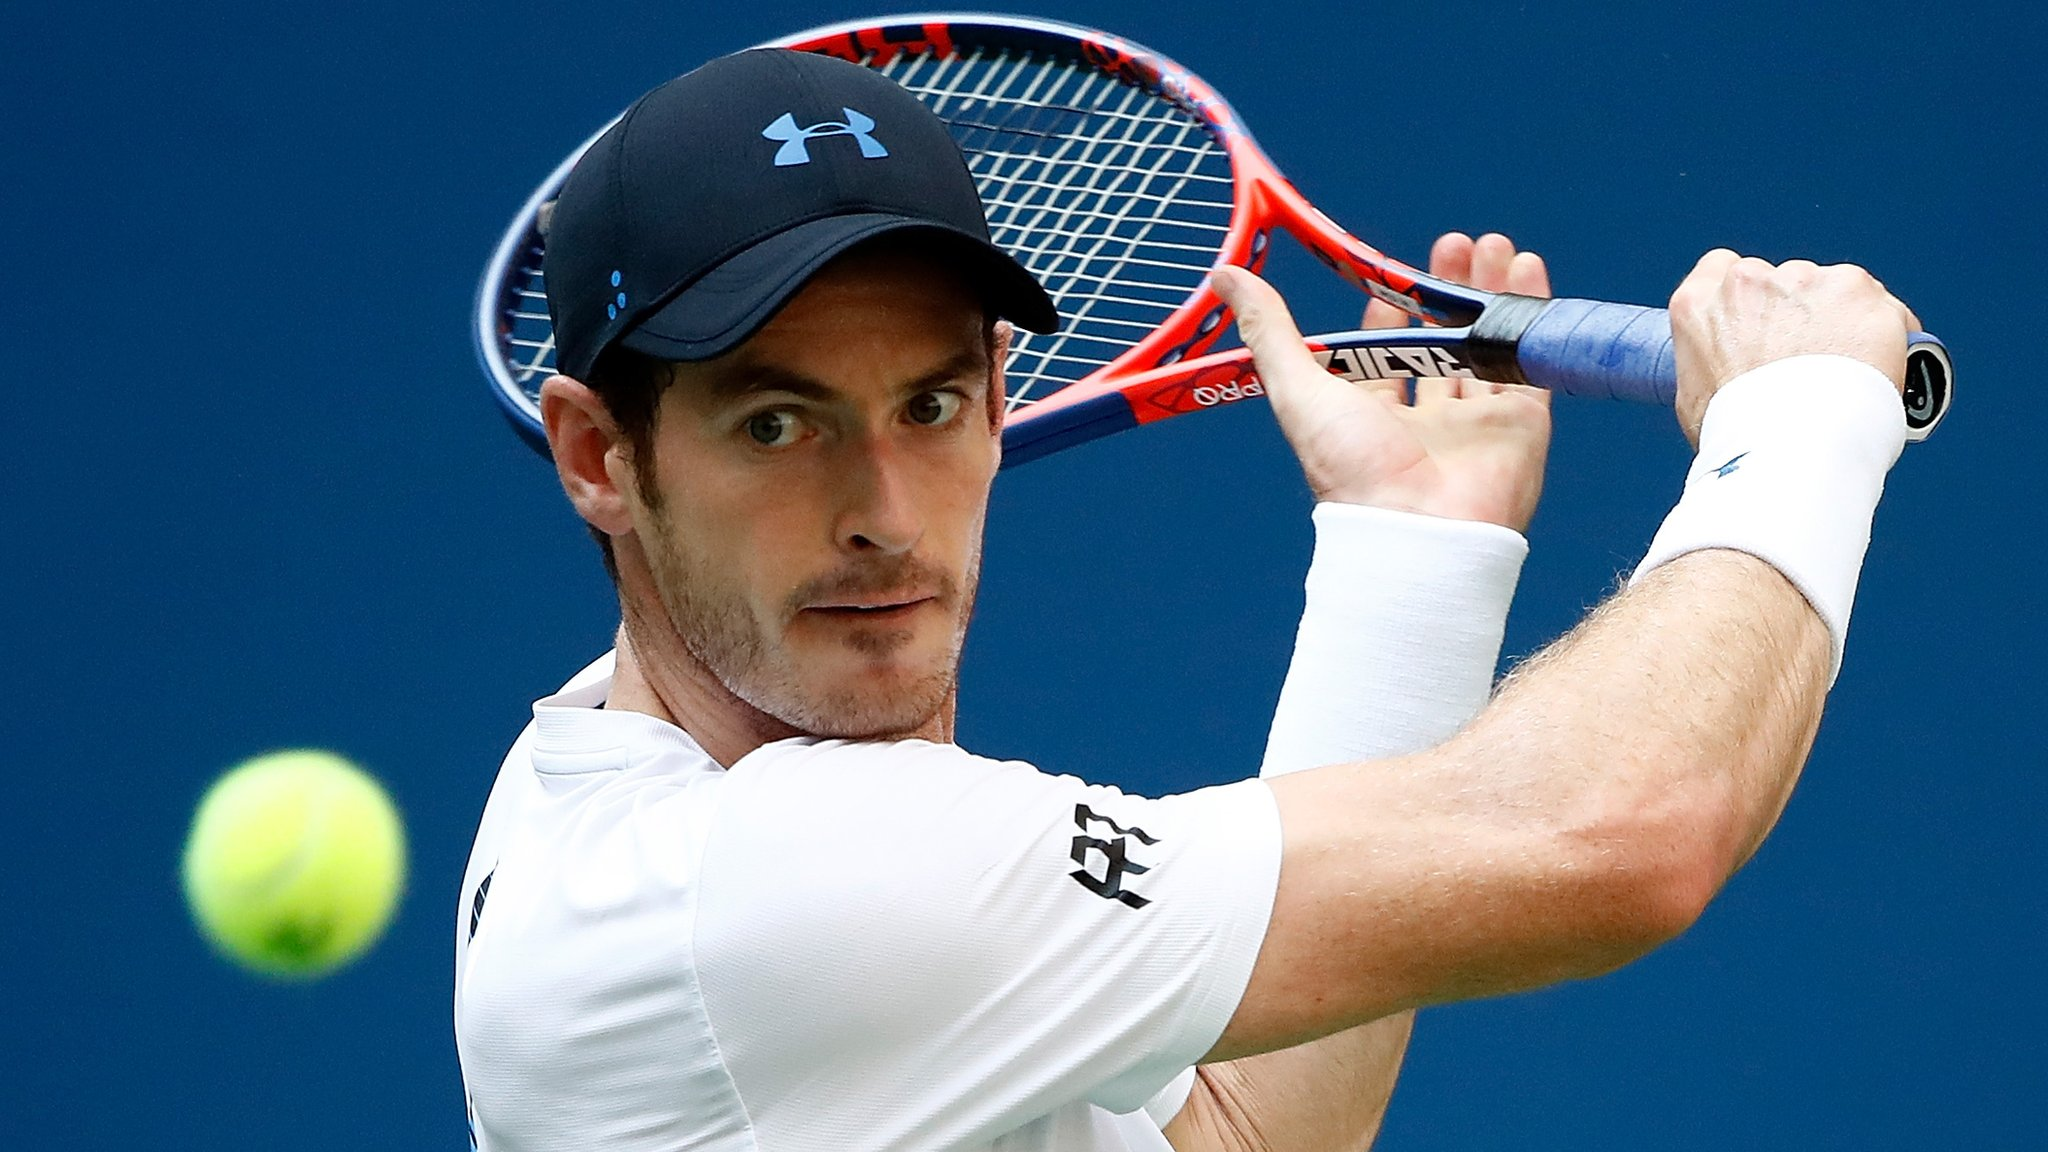 Andy Murray to end comeback season early after competing in China events